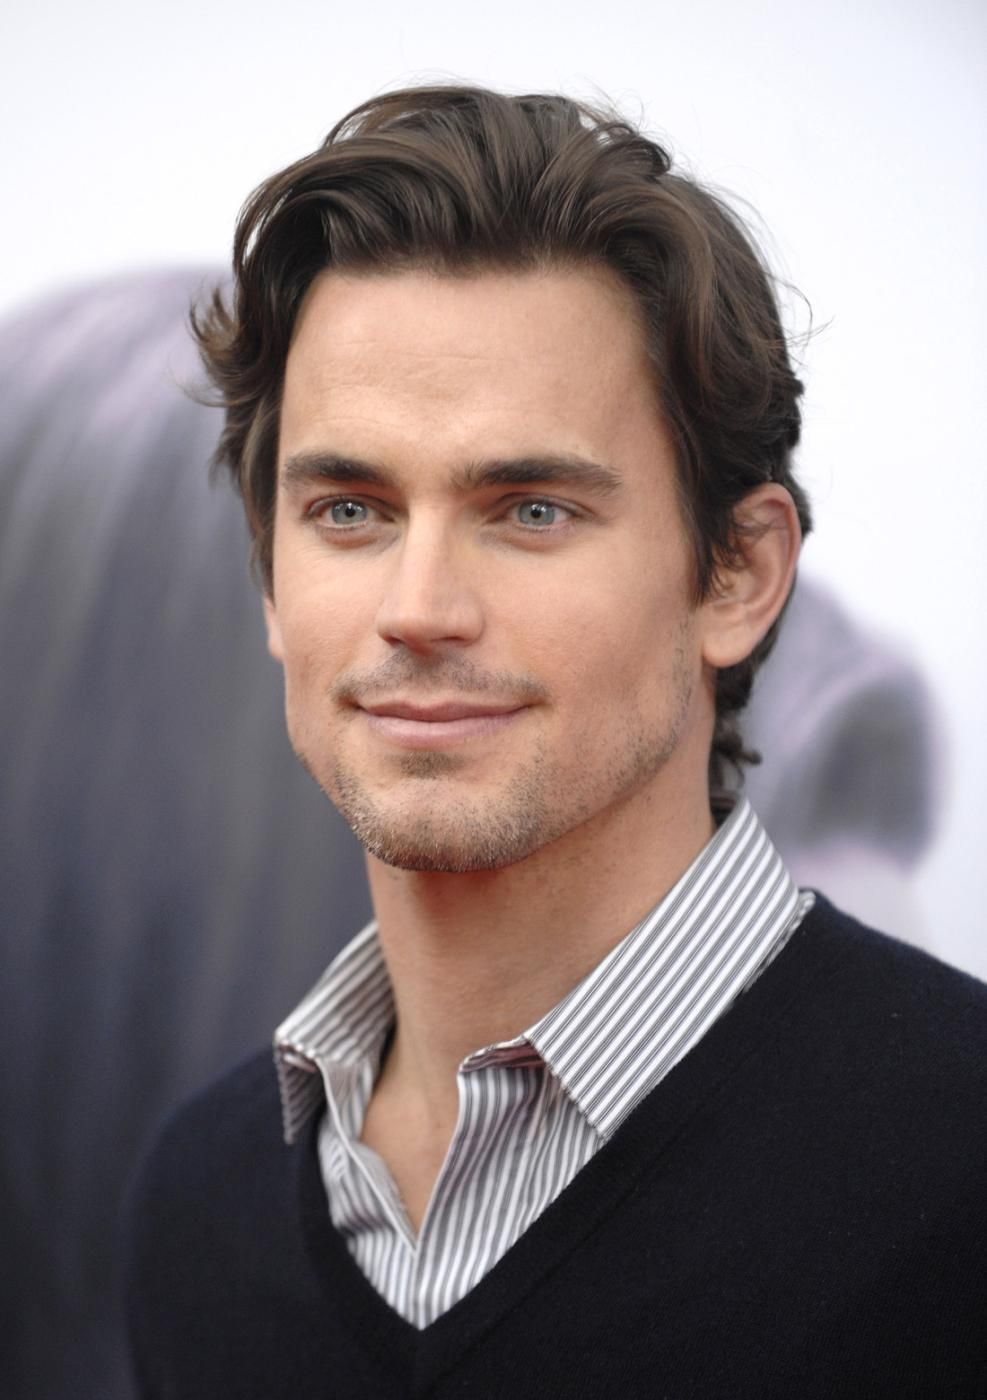 Matt Bomer Hairstyle To Copy In 2020 Matt Bomer Matt Bomer White Collar Actors